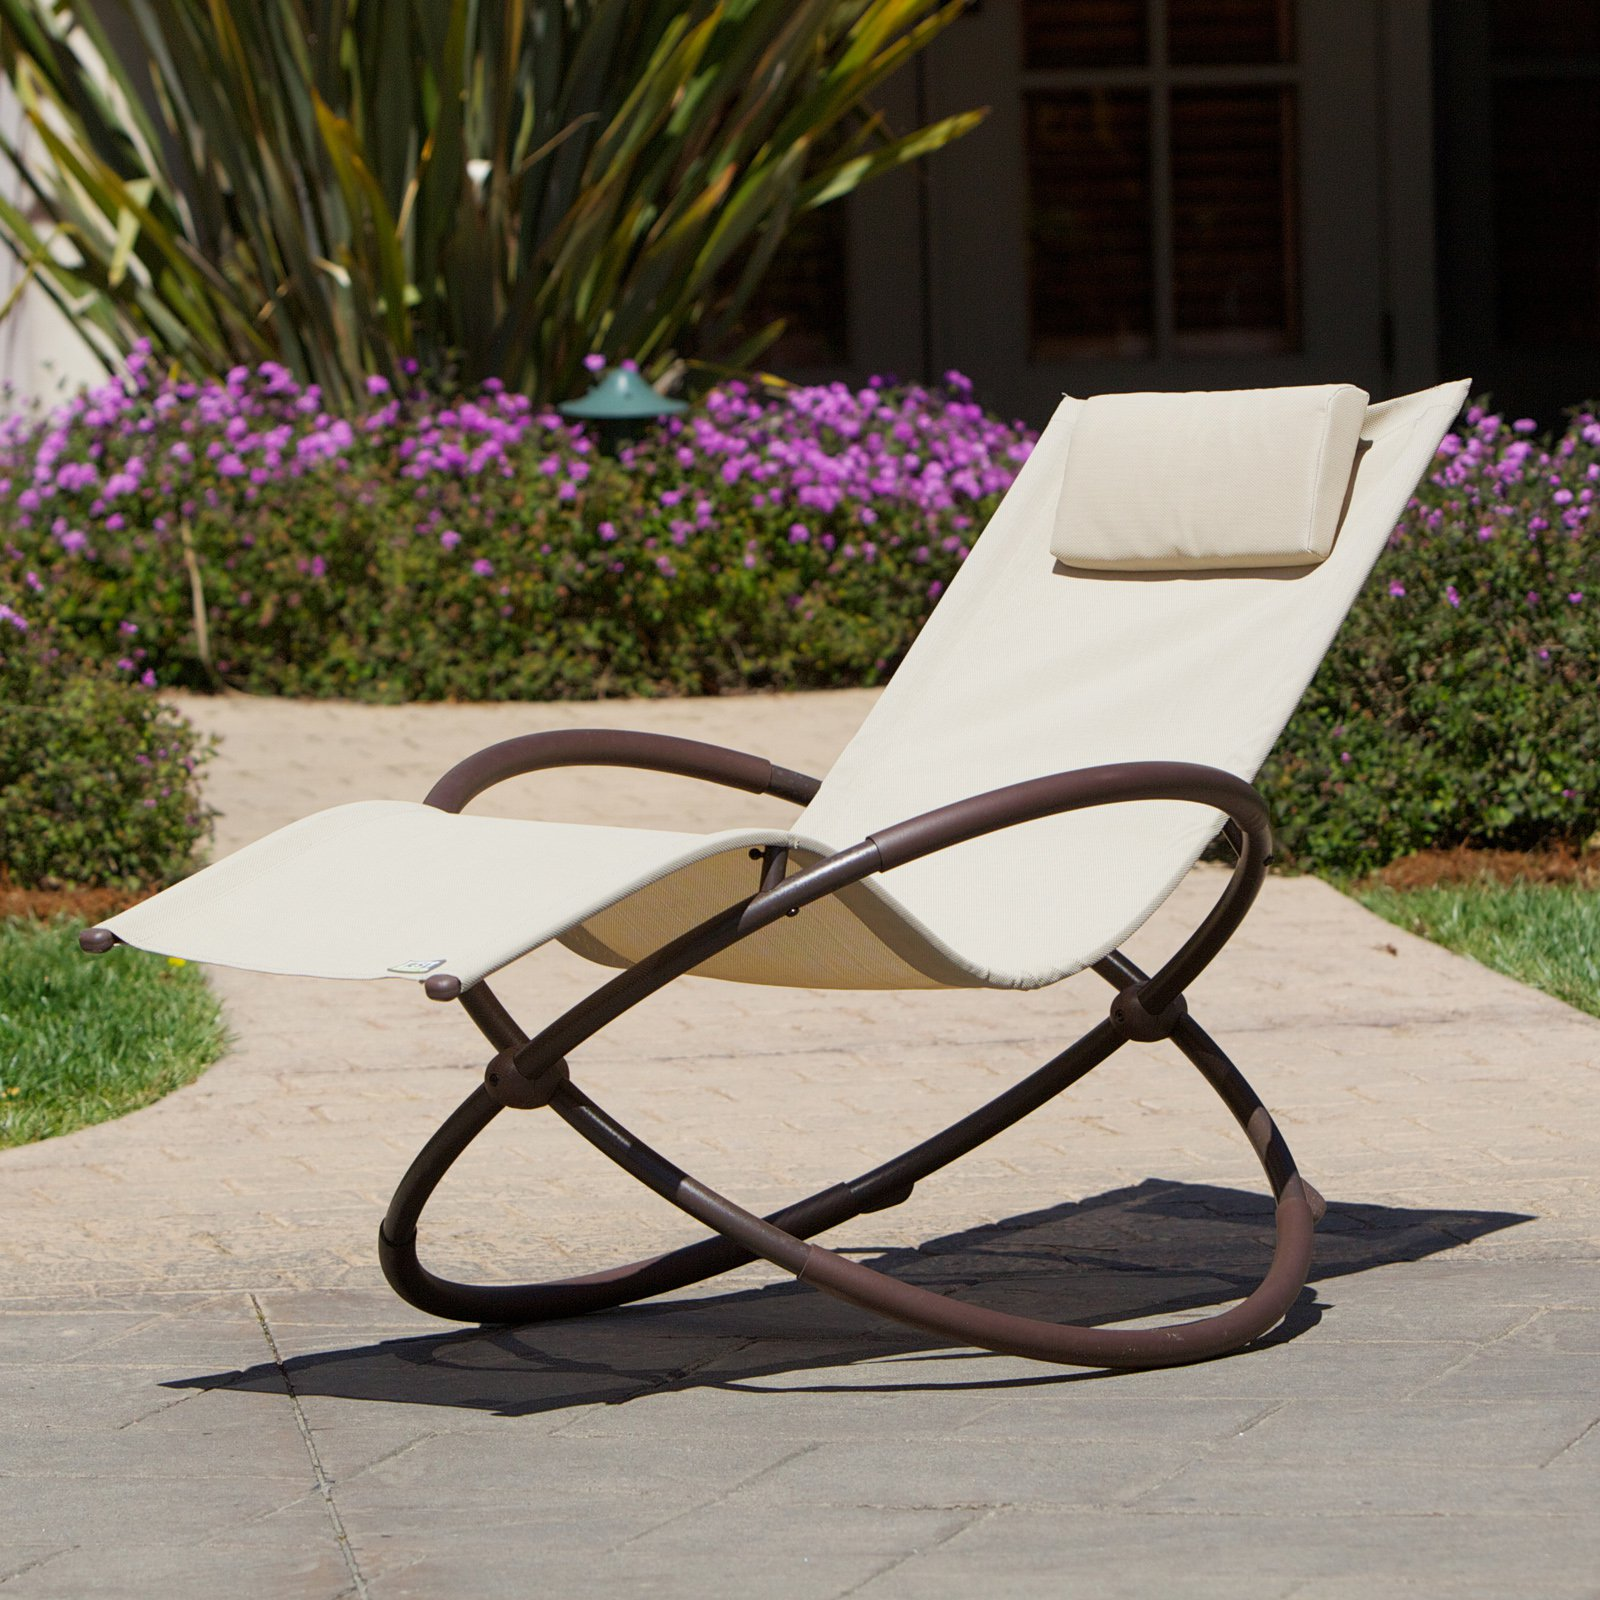 RST Brands Original Orbital Outdoor Lounger, Beige